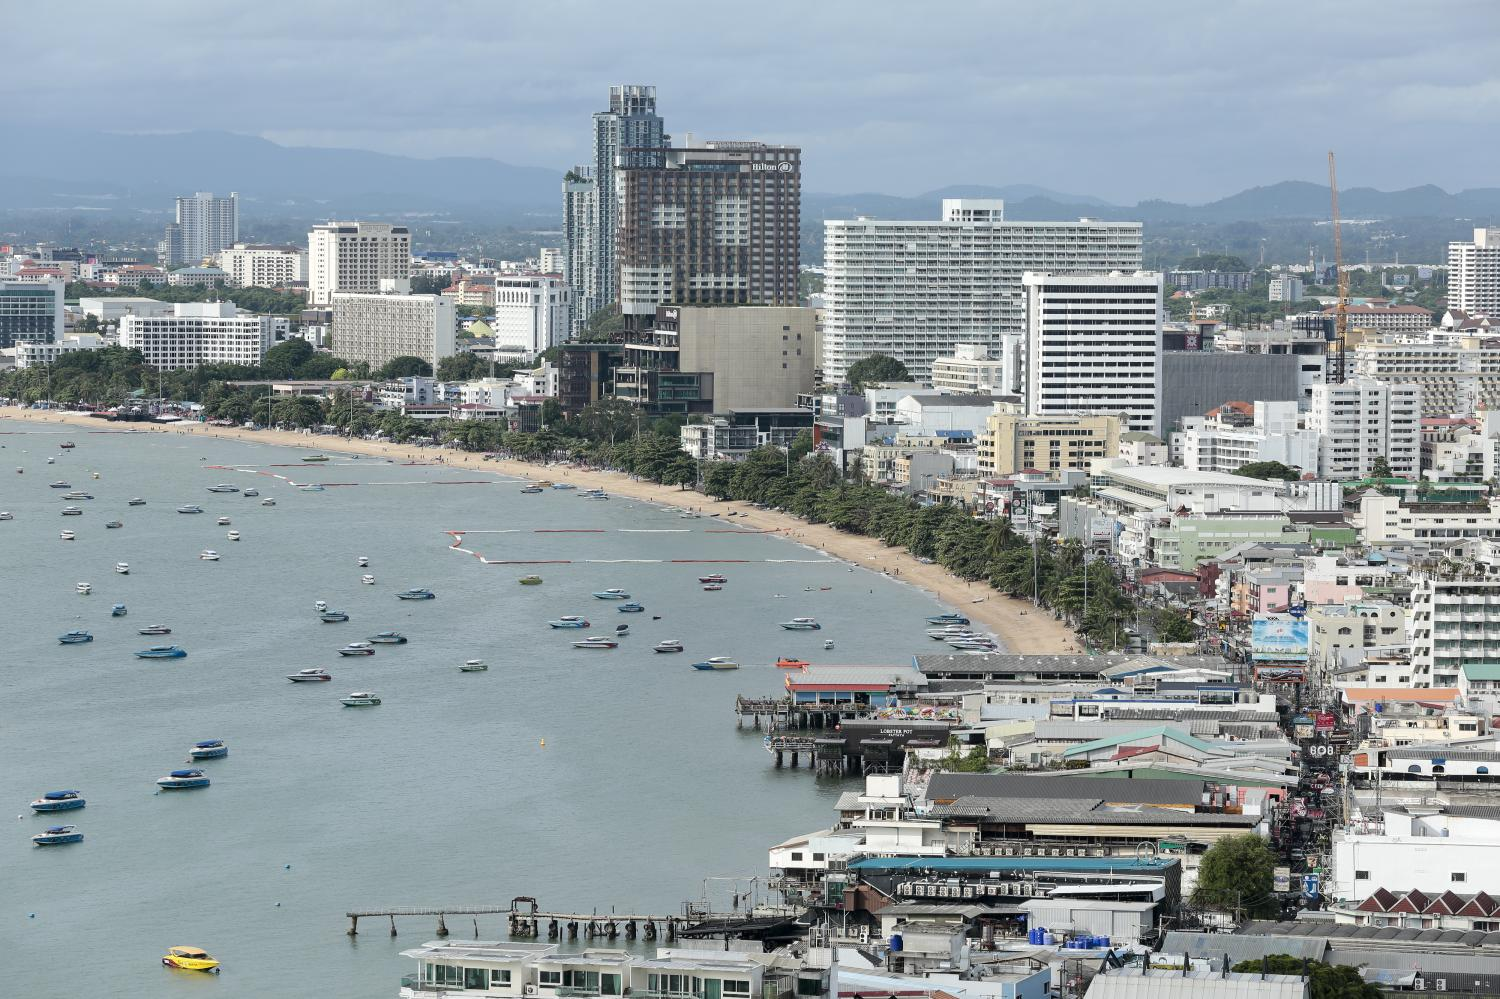 According to Colliers research on the Pattaya condo market, unsold supply exceeded 25,000 units at the end of 2019, up from 12,800 units in 2018. (Photo by Patipat Janthong)